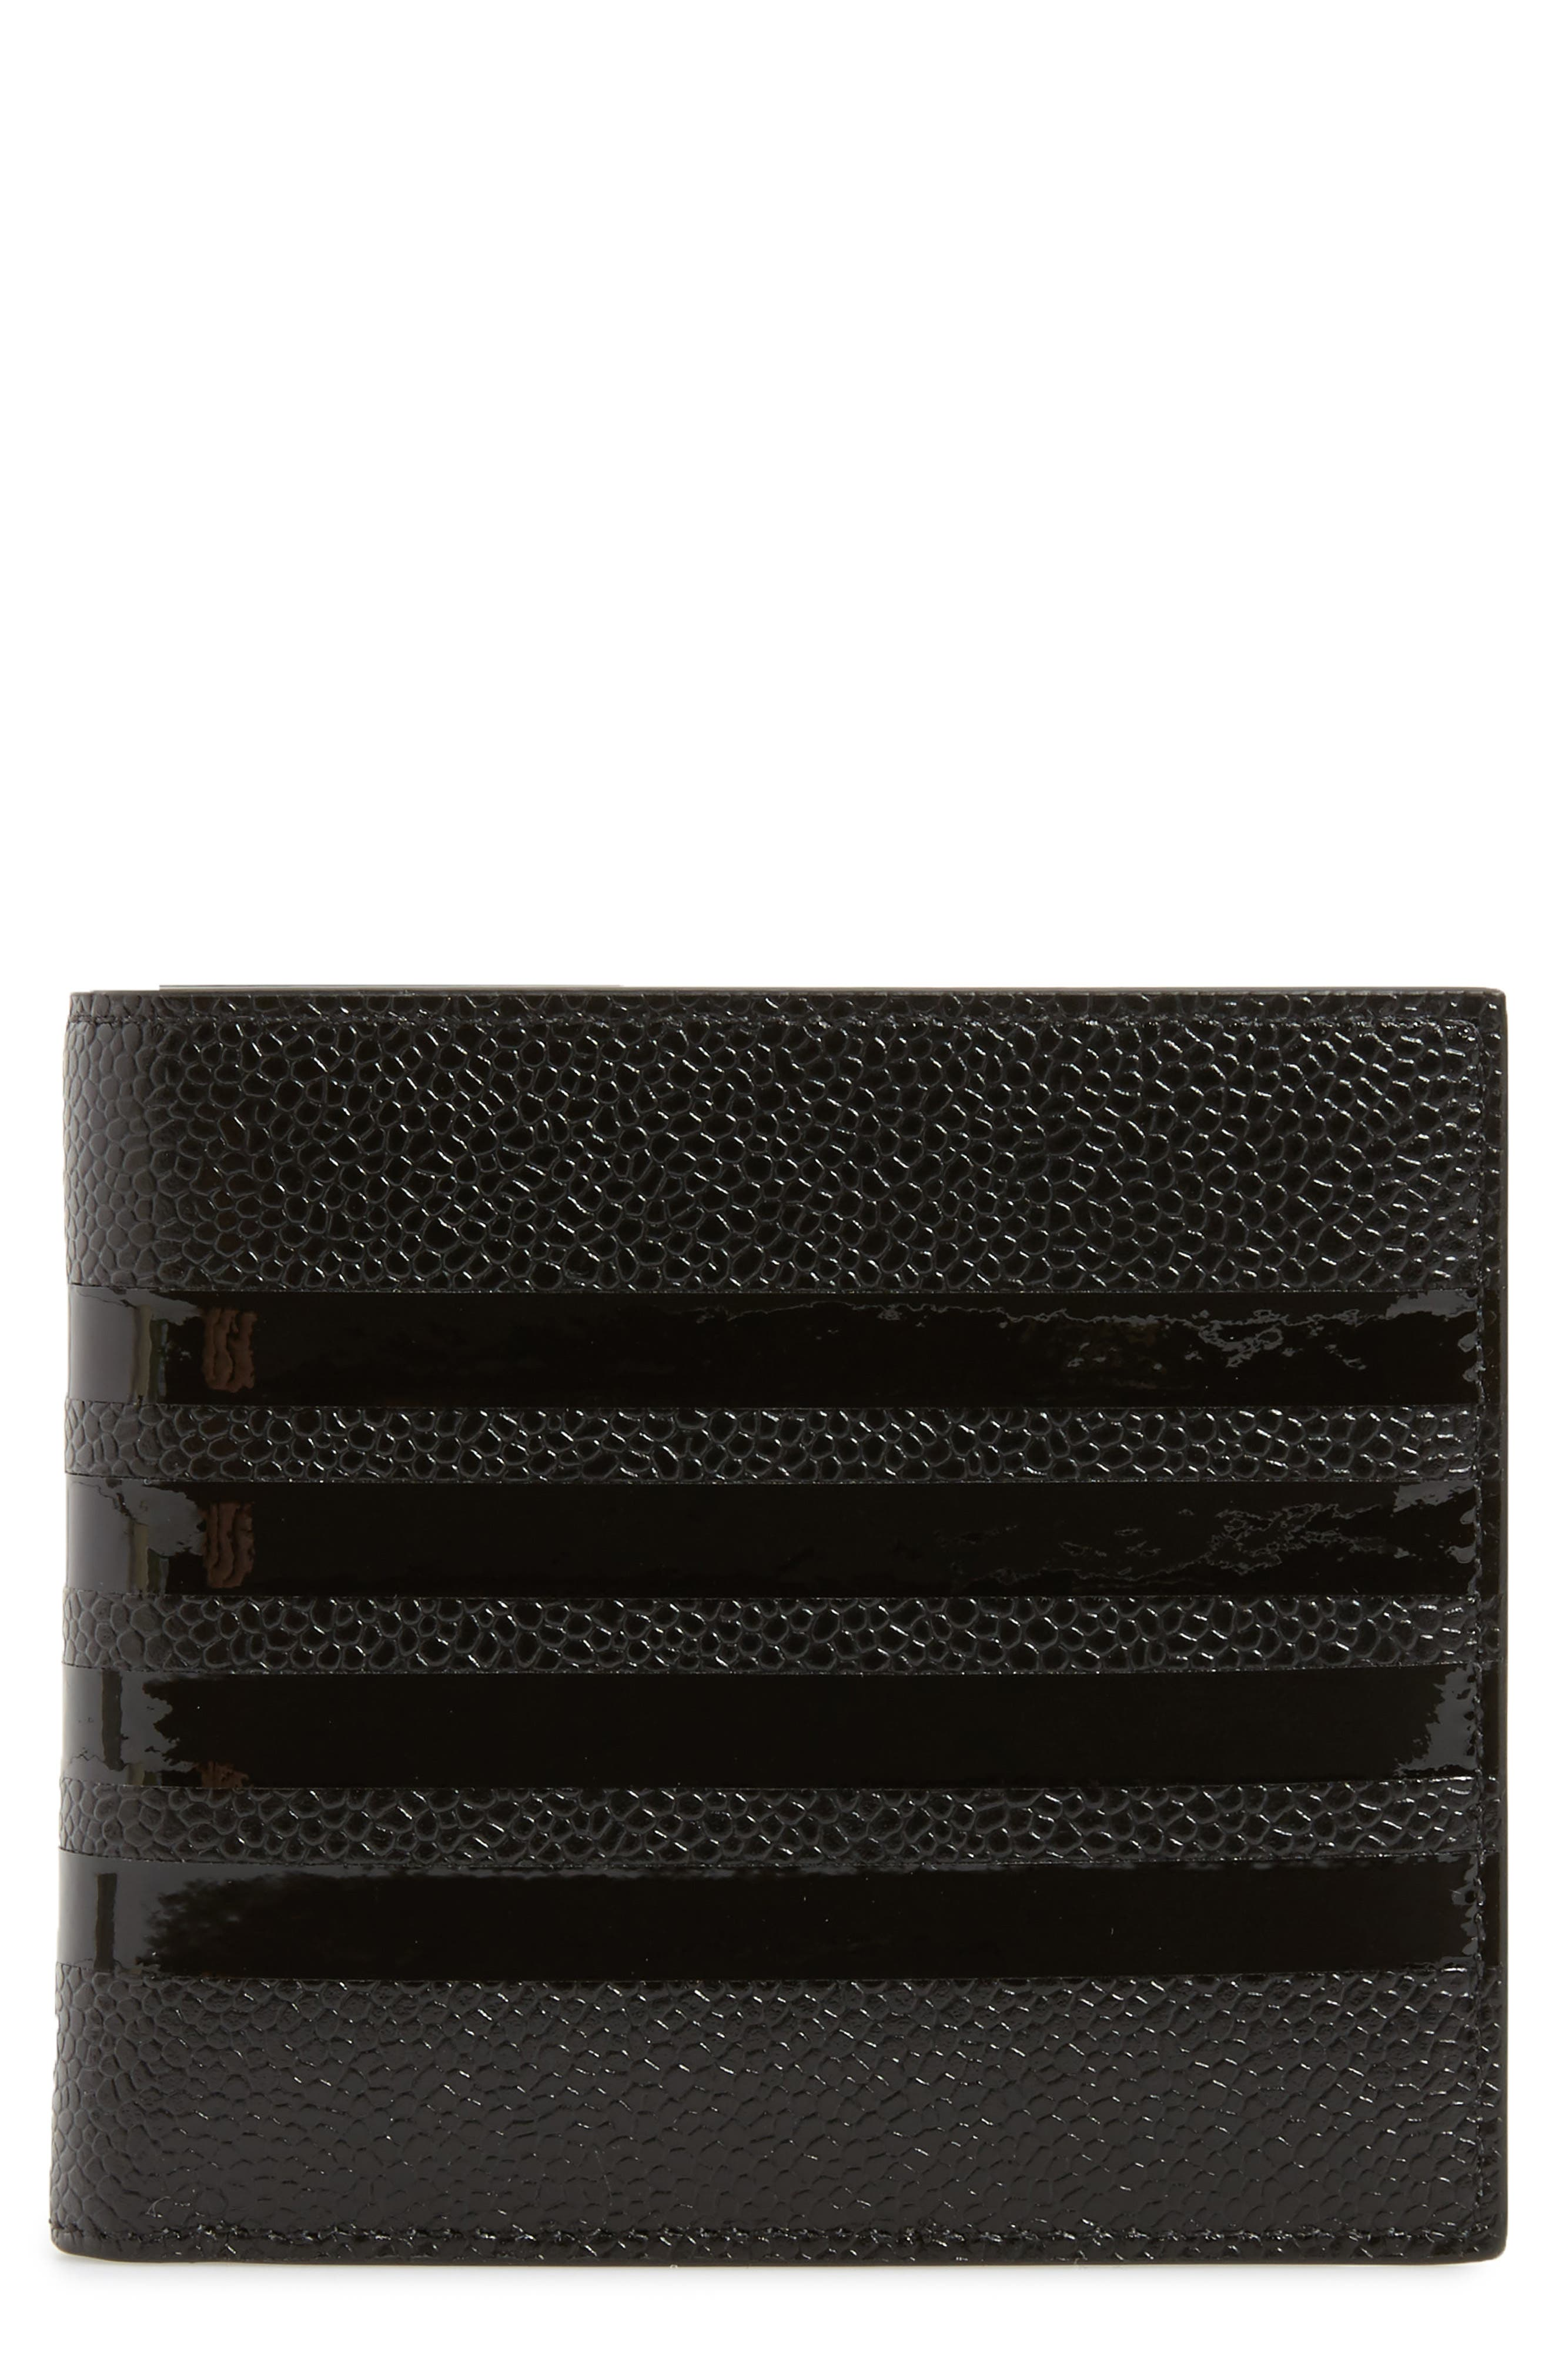 Main Image - Thom Browne Patent Leather Bifold Wallet